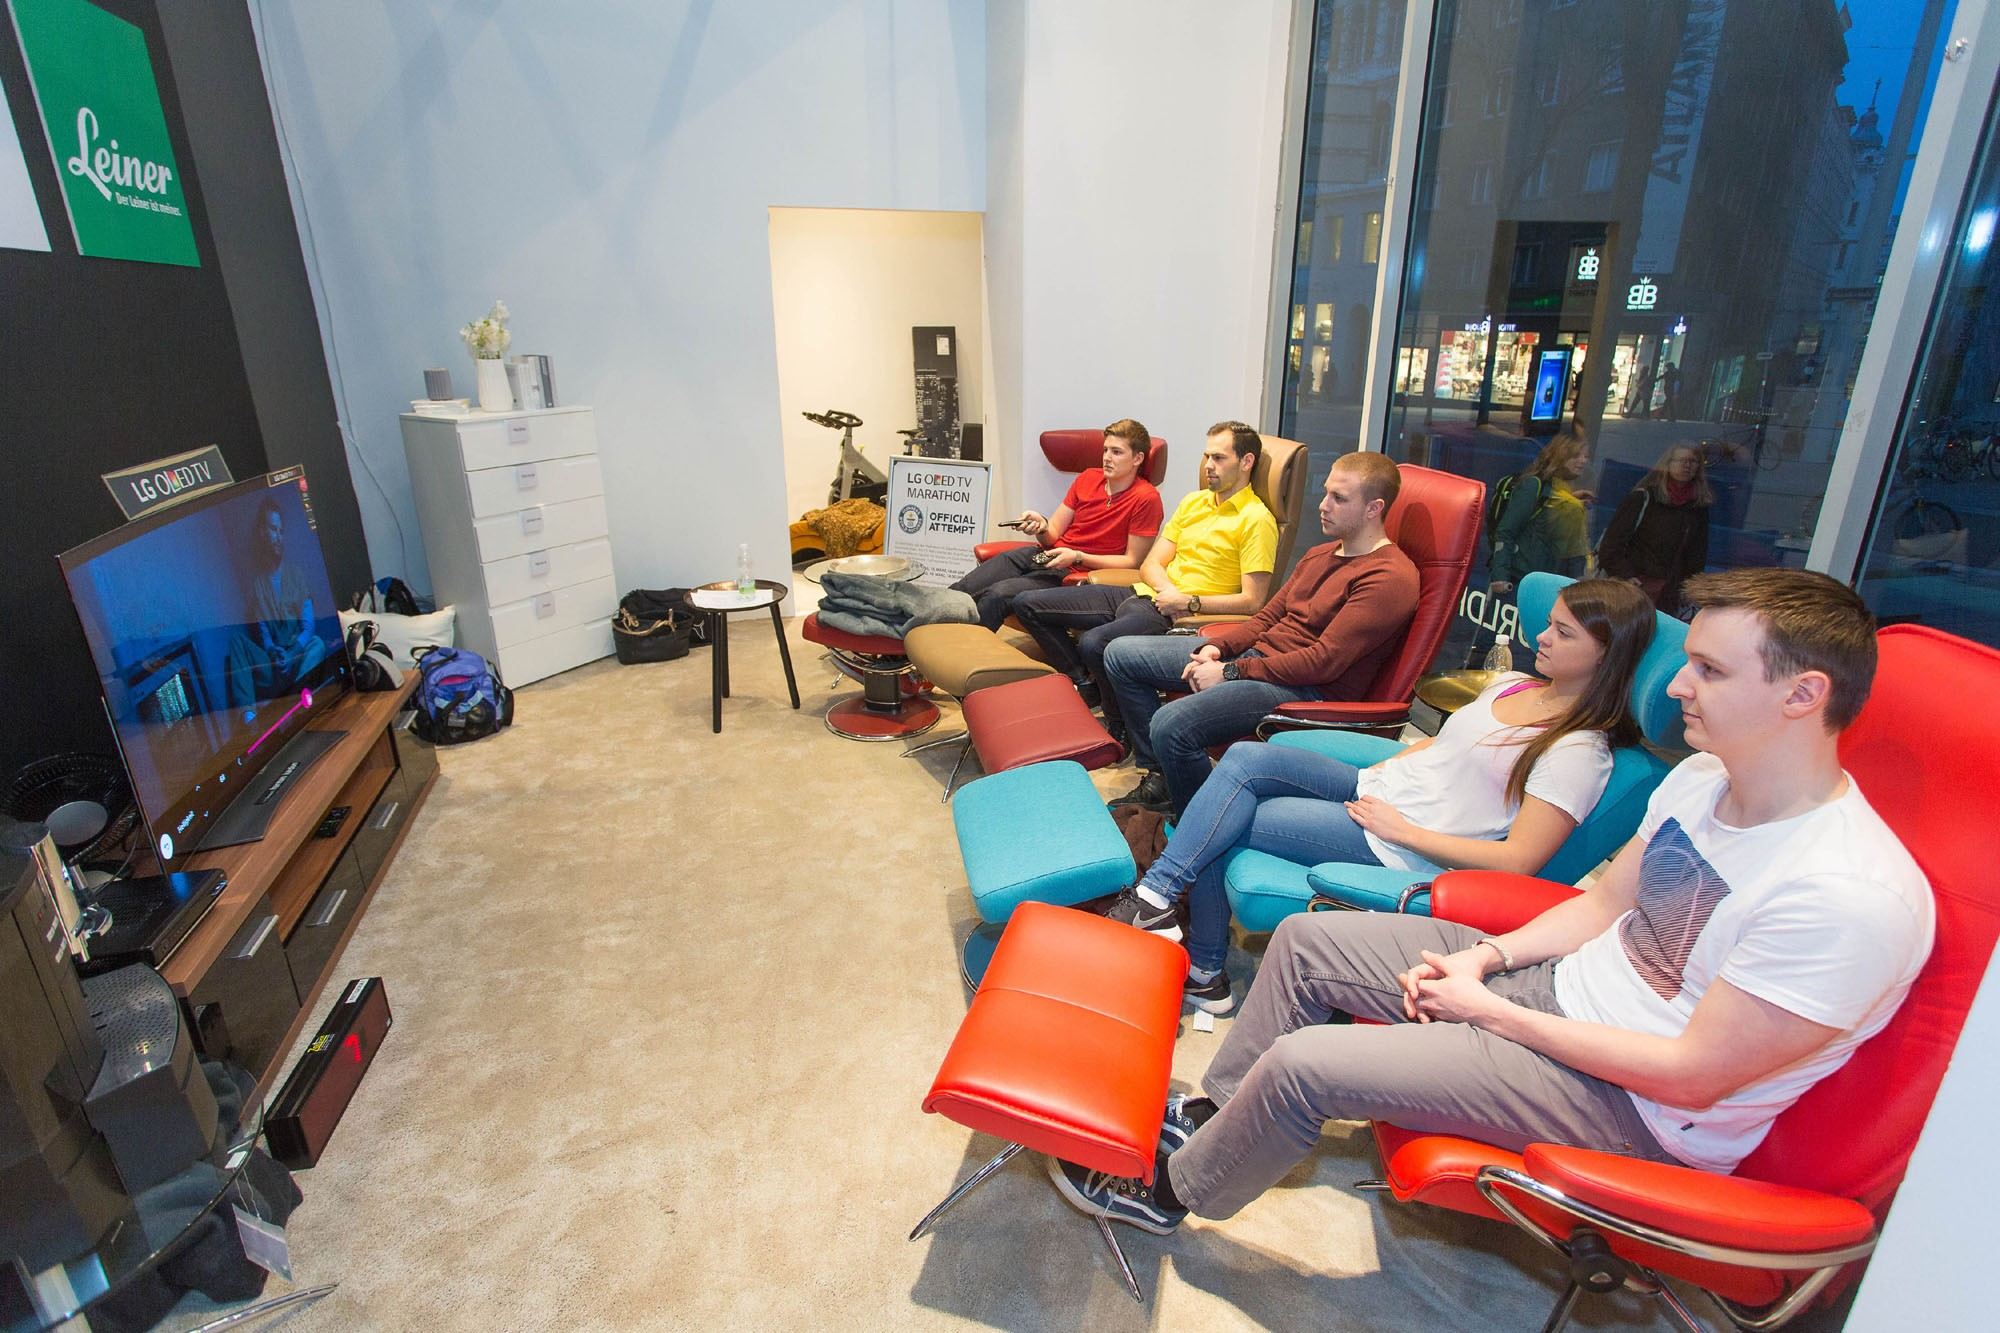 Five participants watch TV on one of LG's OLED TVs during their TV-watching marathon